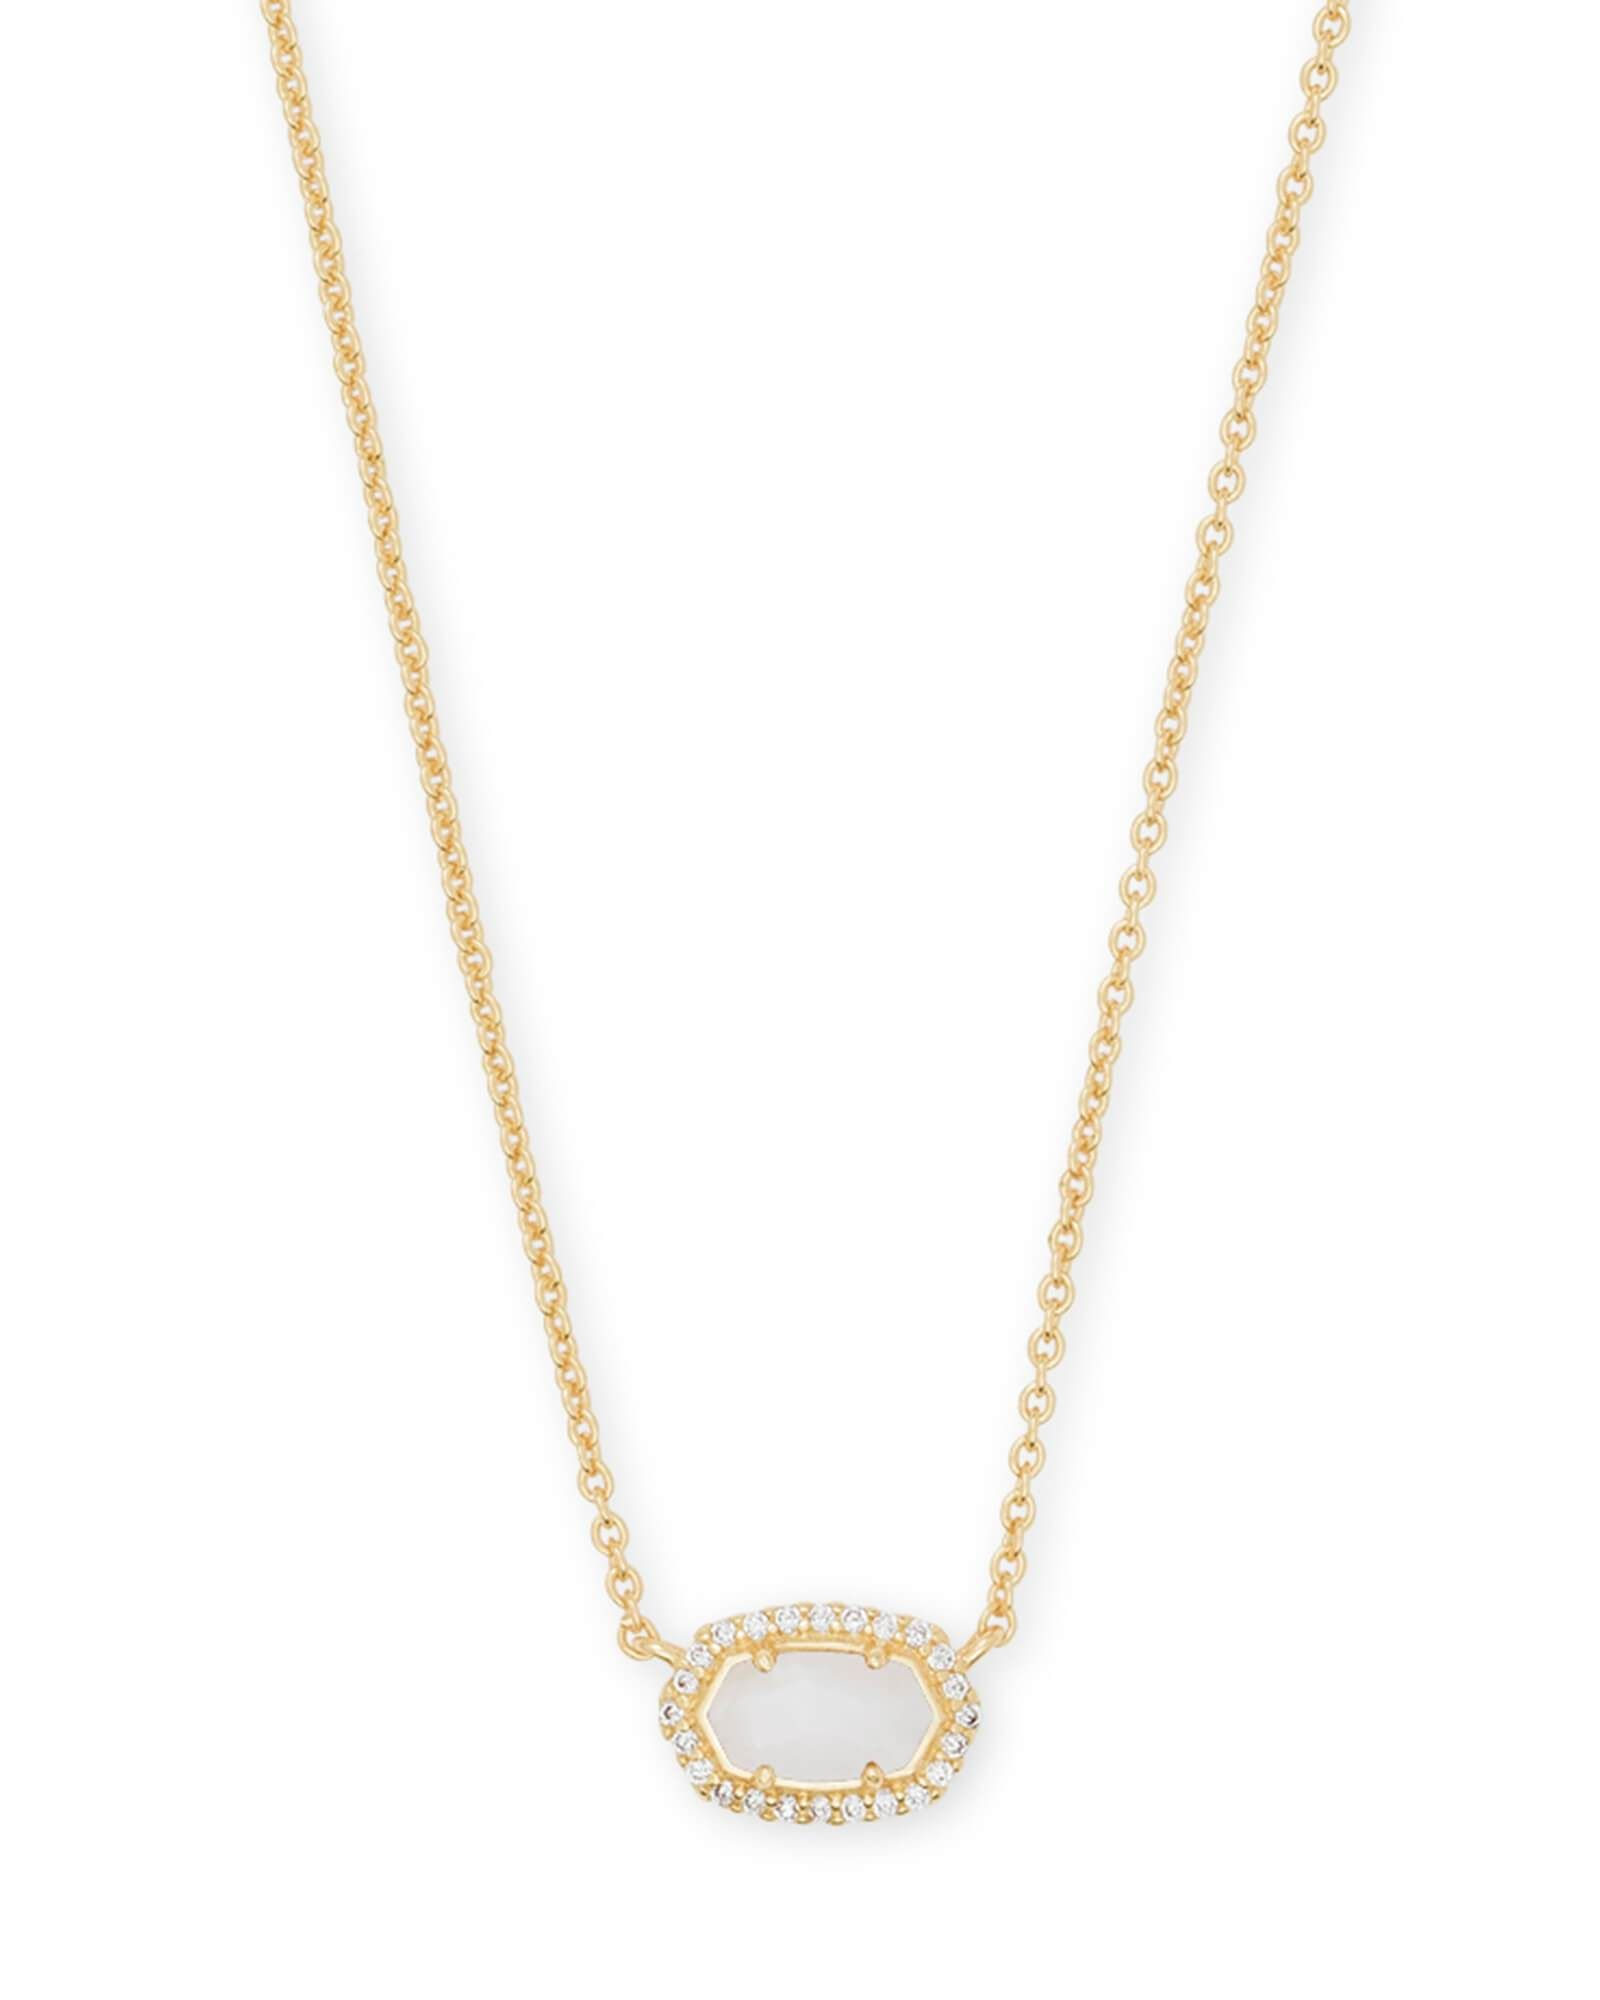 Kendra scott chelsea gold pendant necklace in white pearl products